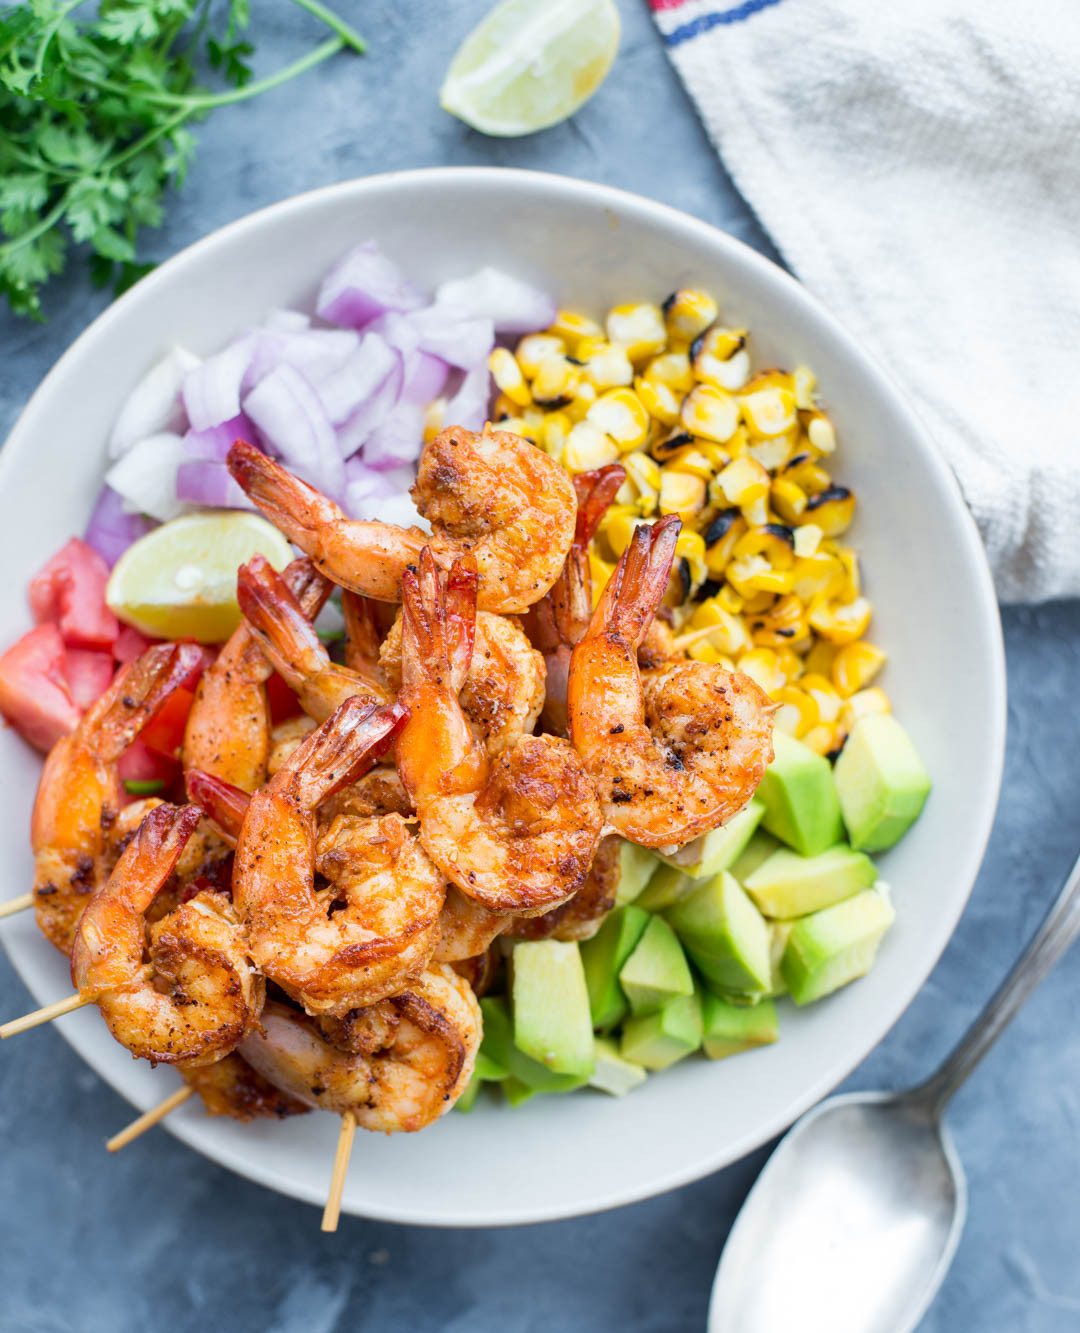 Shrimp And Corn Salad  GRILLED SHRIMP WITH CORN AVOCADO SALAD The flavours of